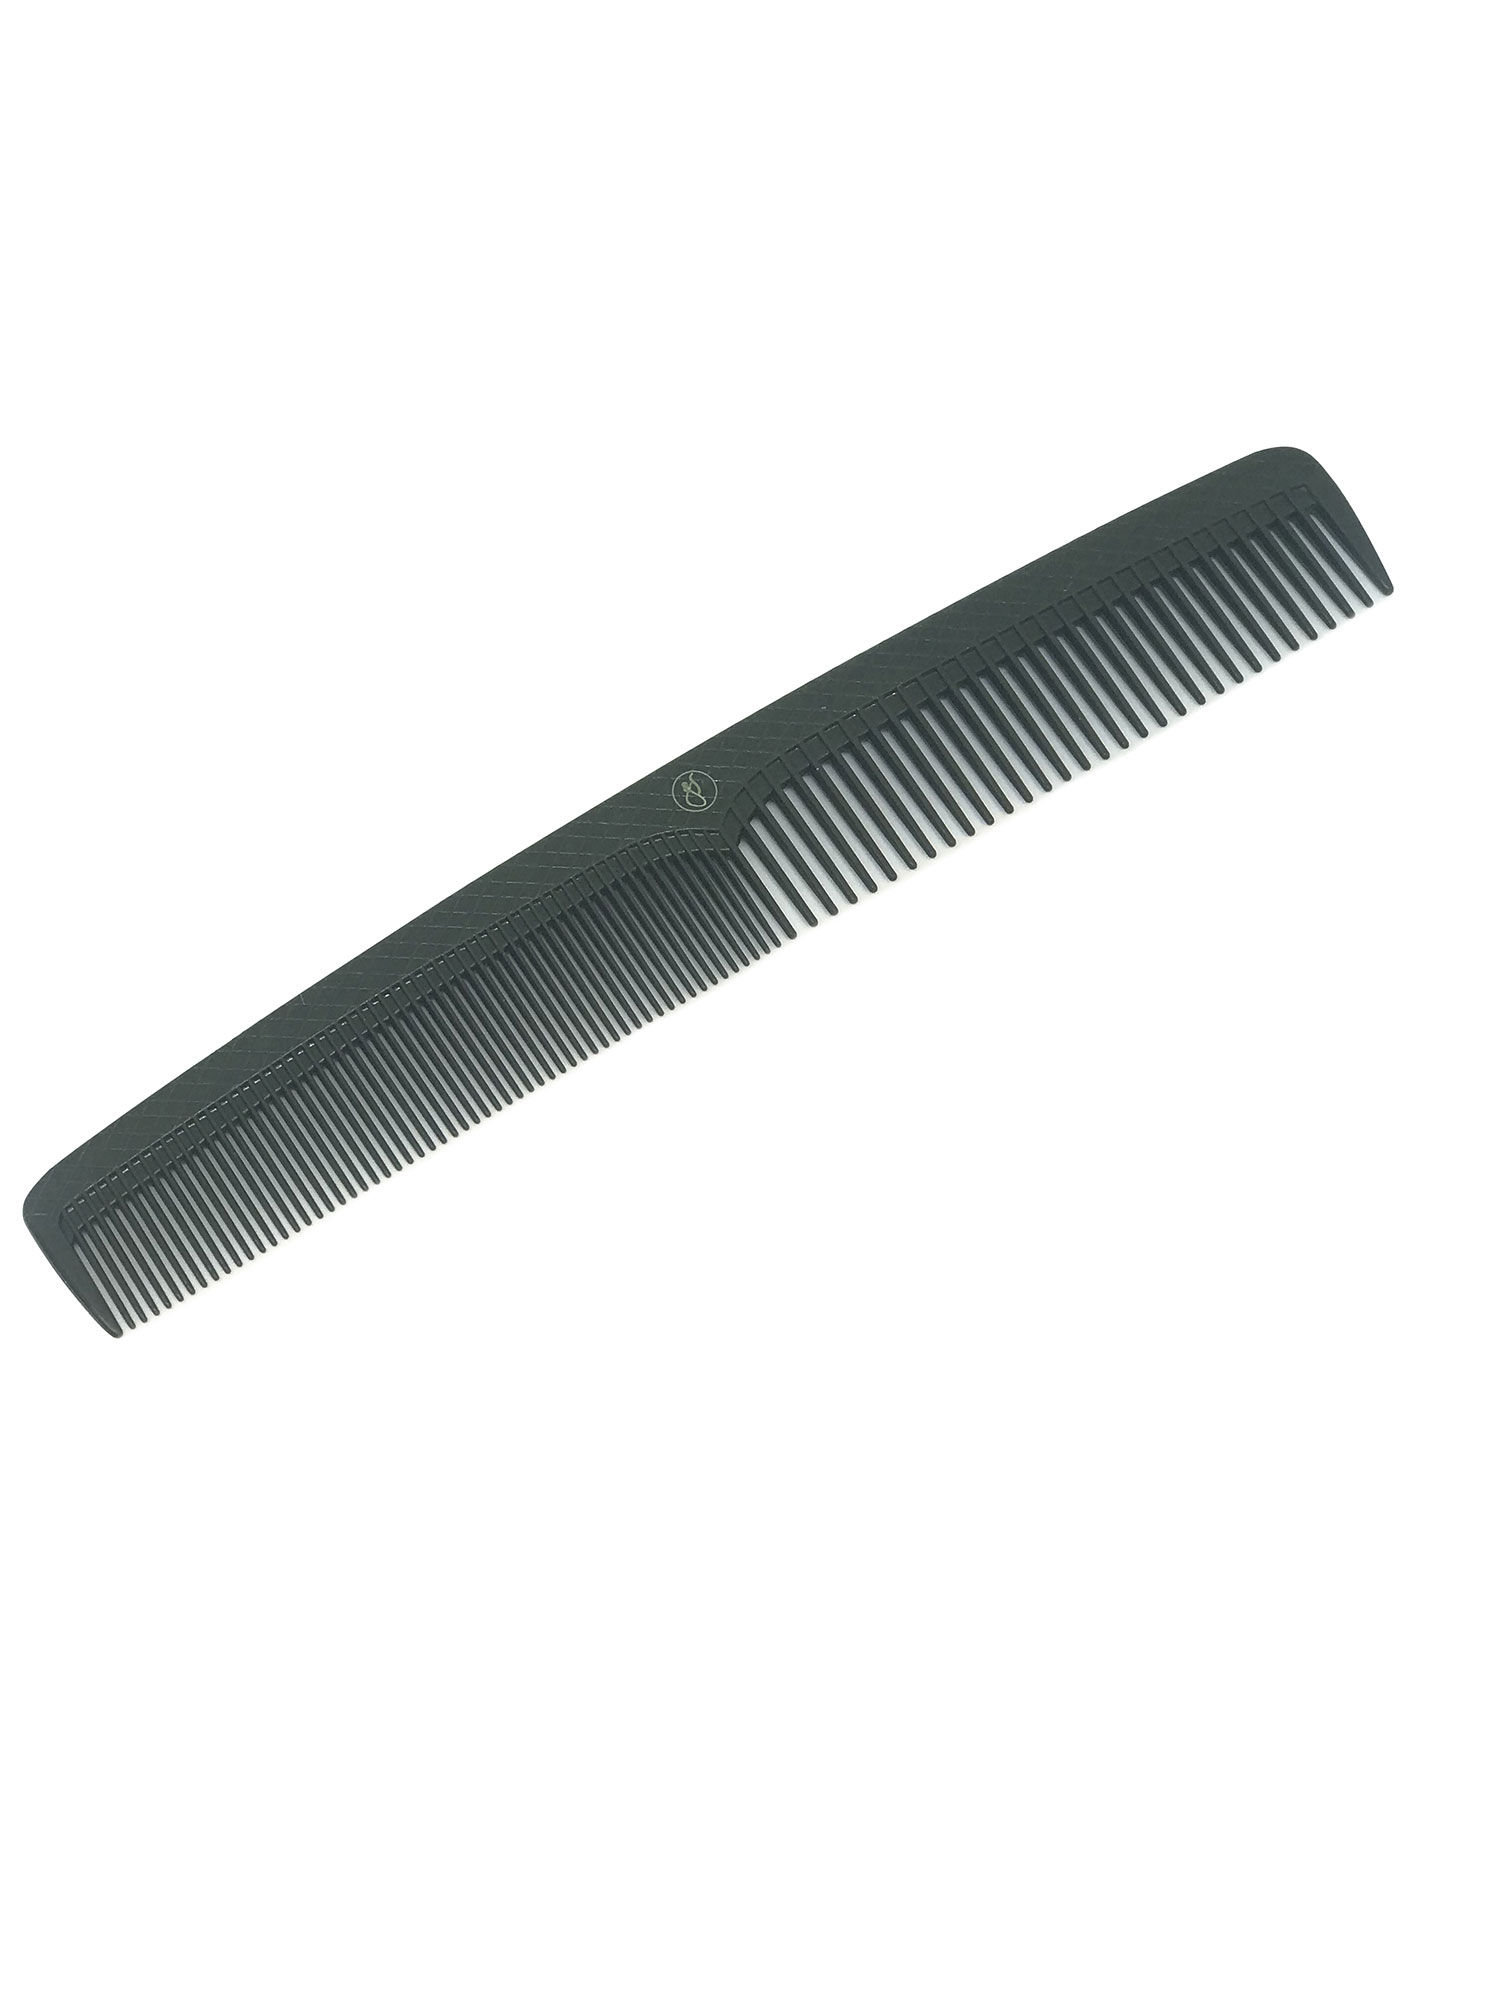 THE GS GREEN COMB